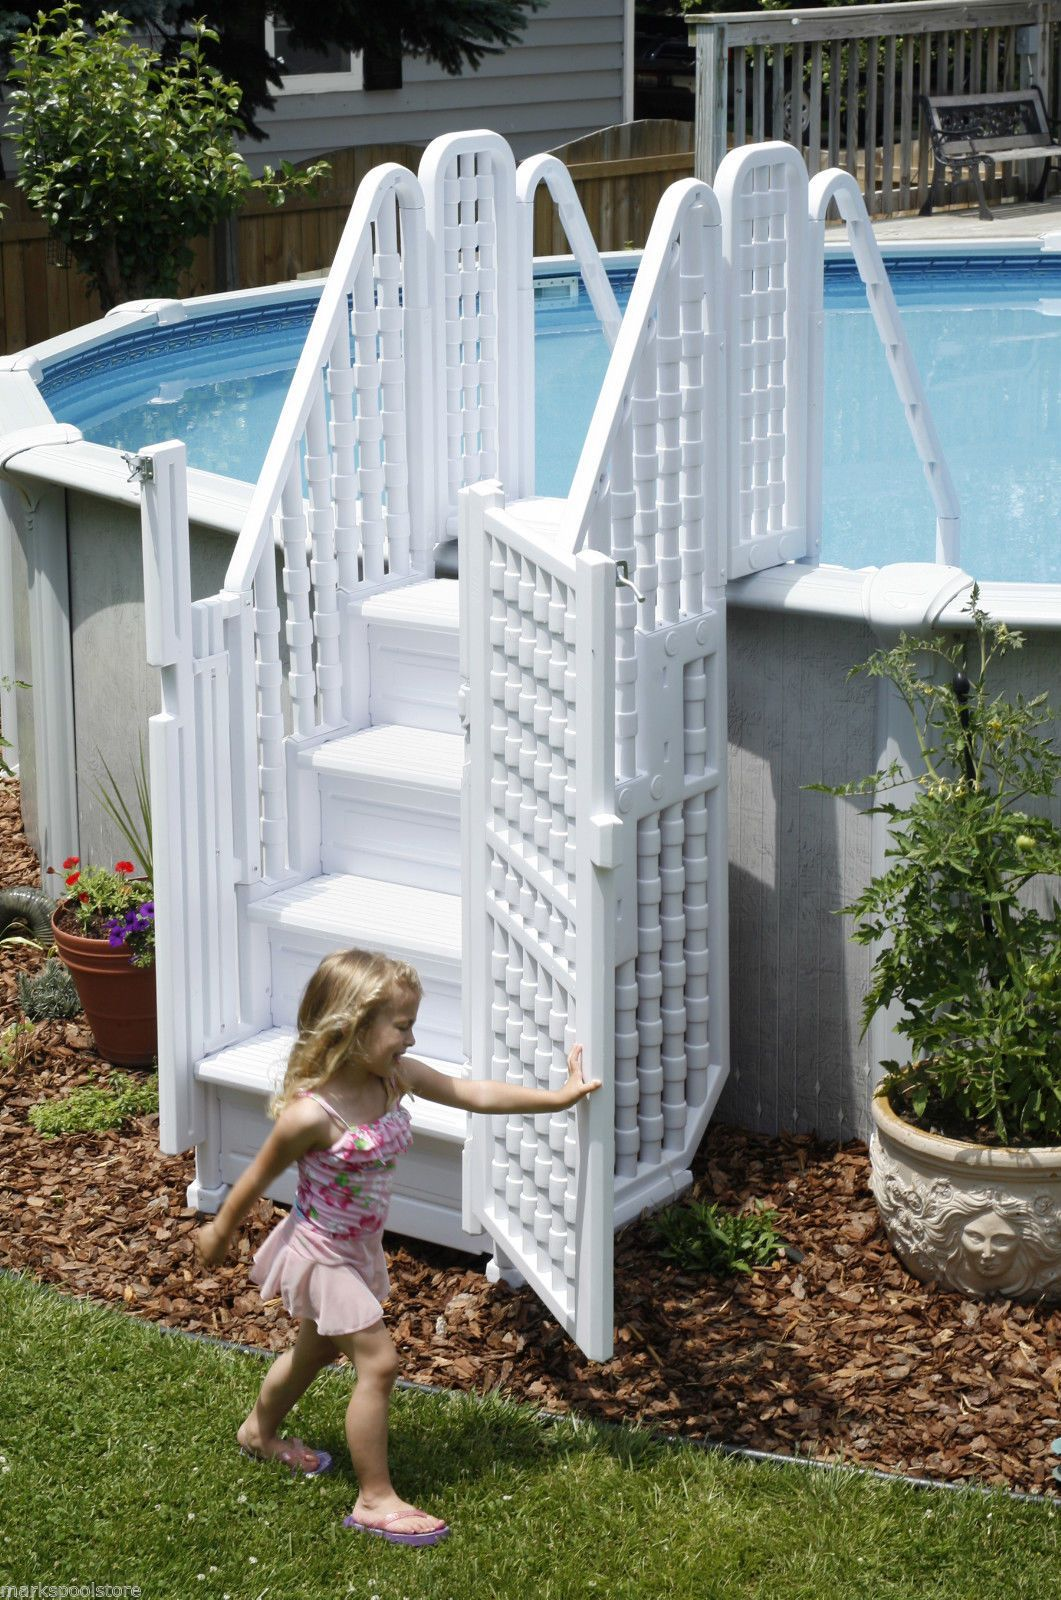 Superbe Above Ground Pool With Gates | ... STEPS ENTRY SYSTEM ABOVE GROUND SWIMMING  POOLS LADDER STAIRS GATE